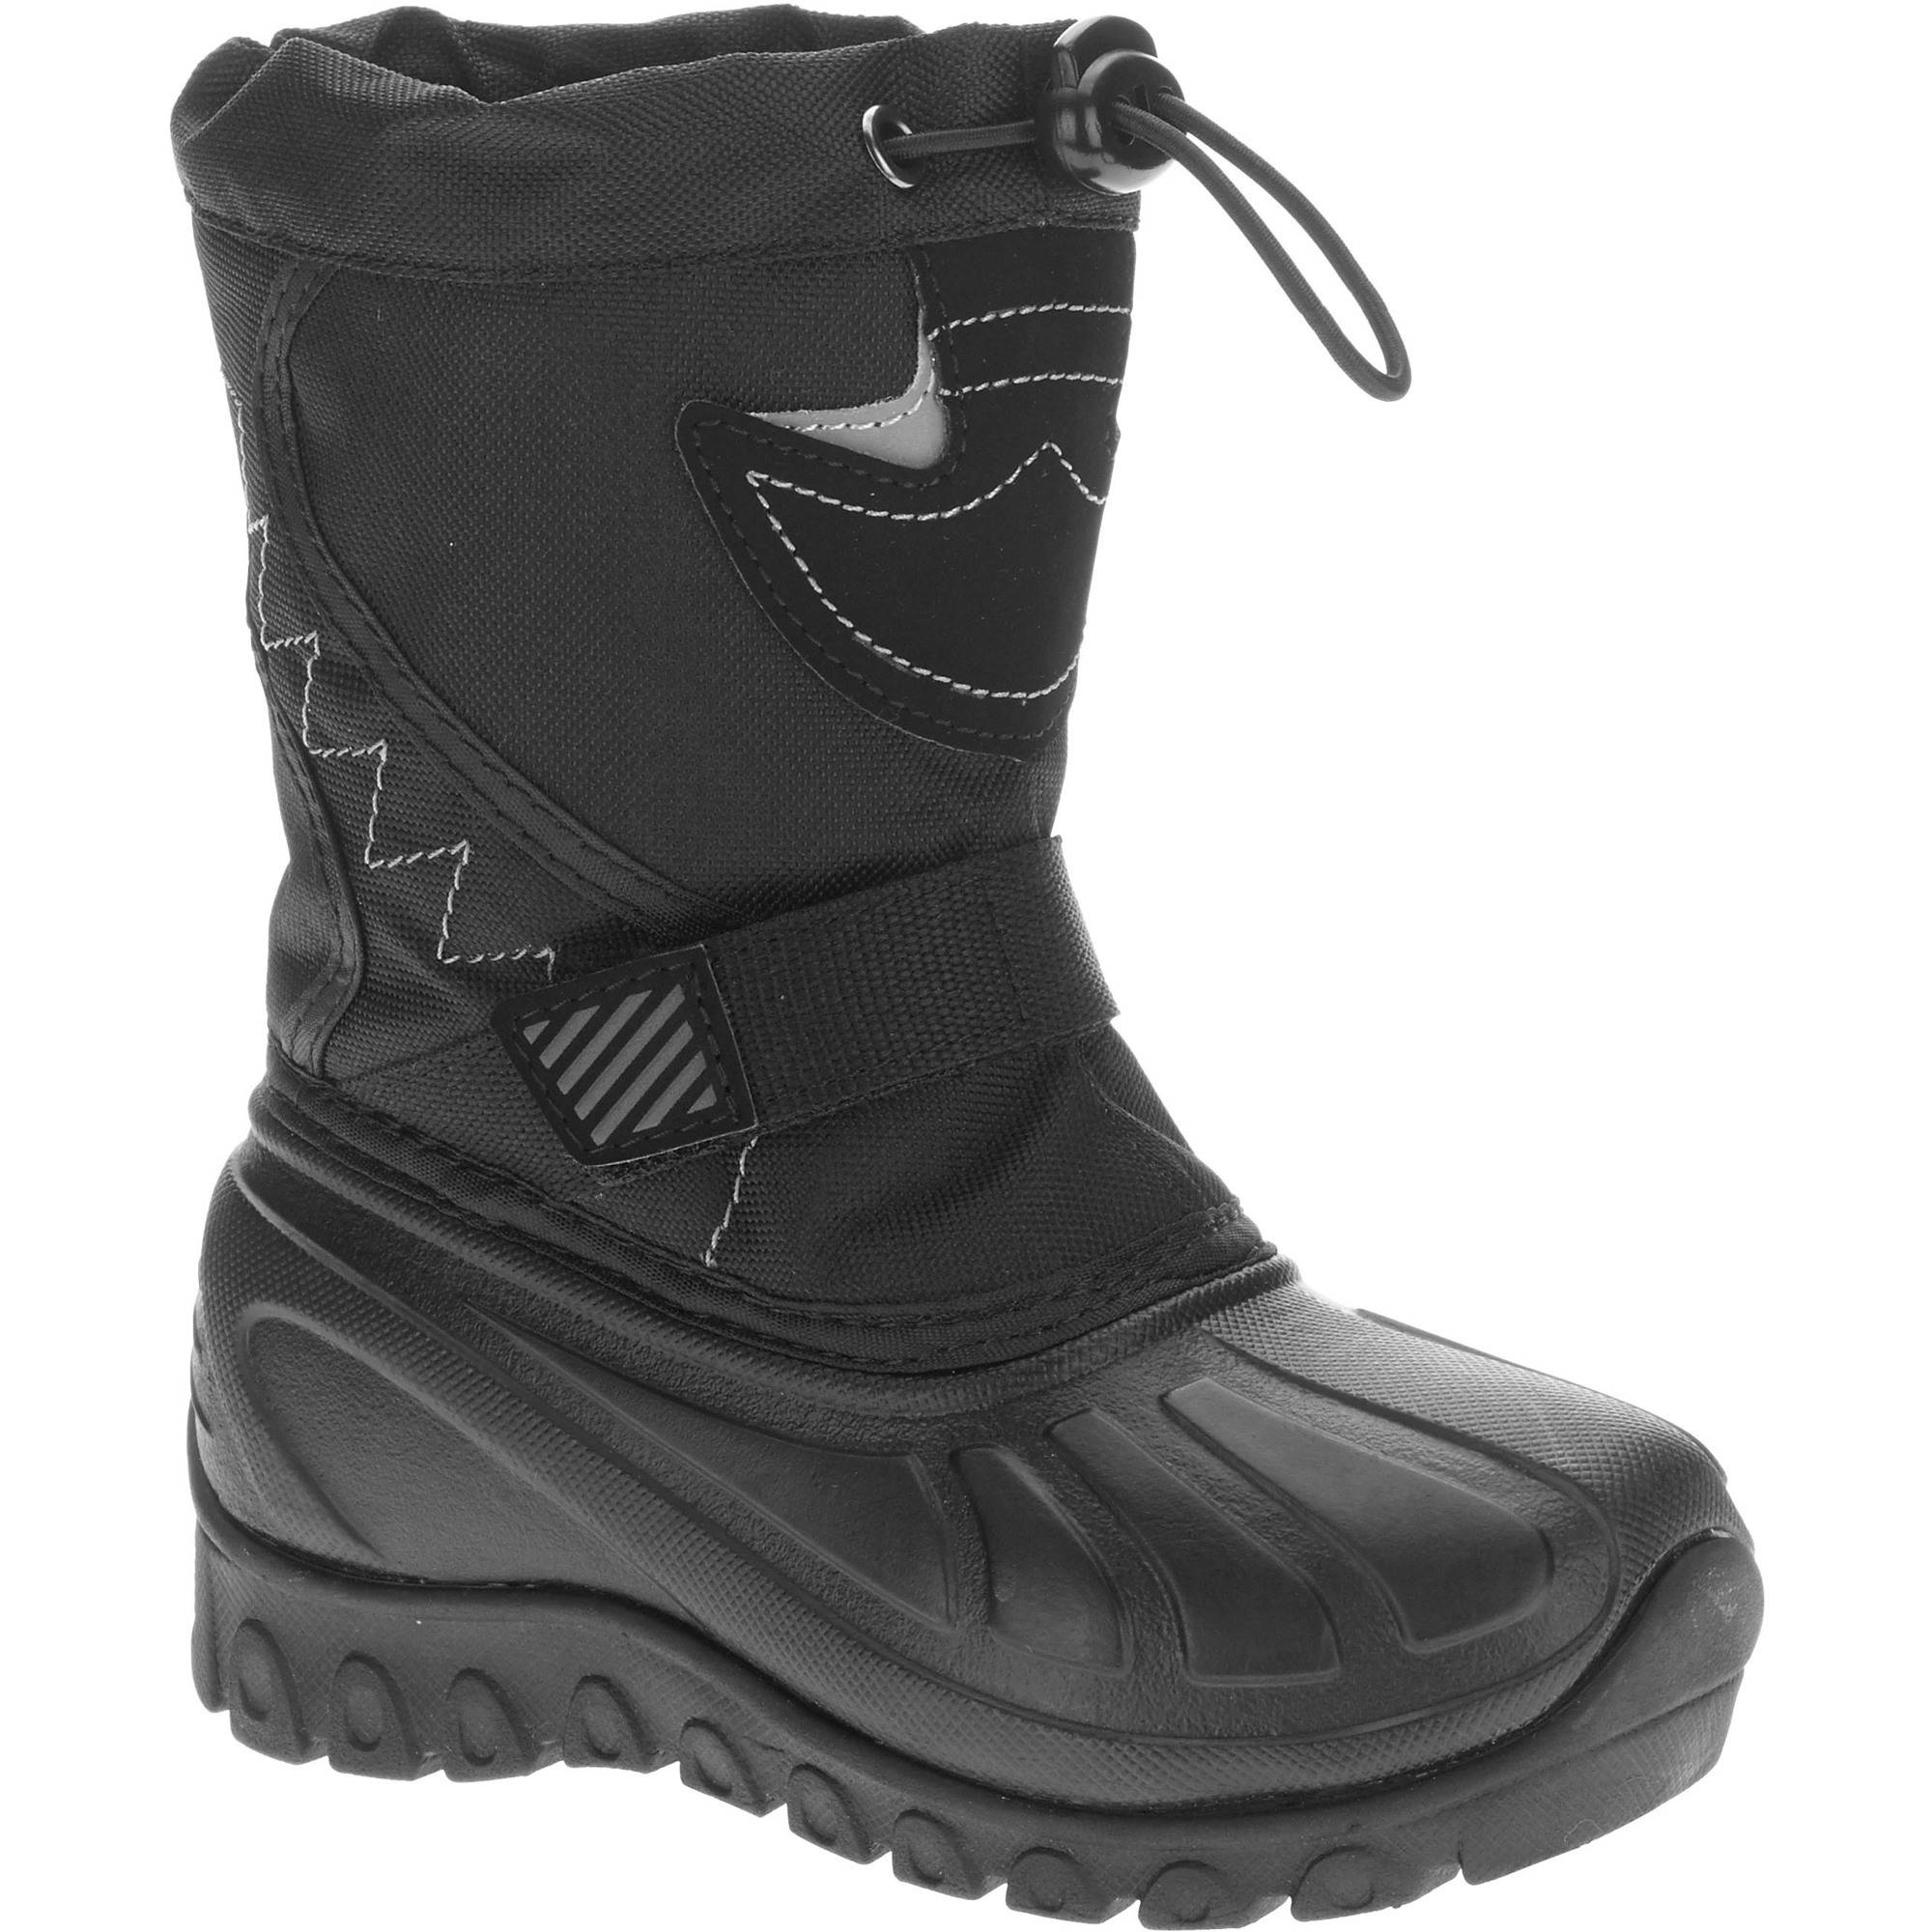 Ozark Trail Toddler Boys' Temp Rated Winter Boot - Walmart.com